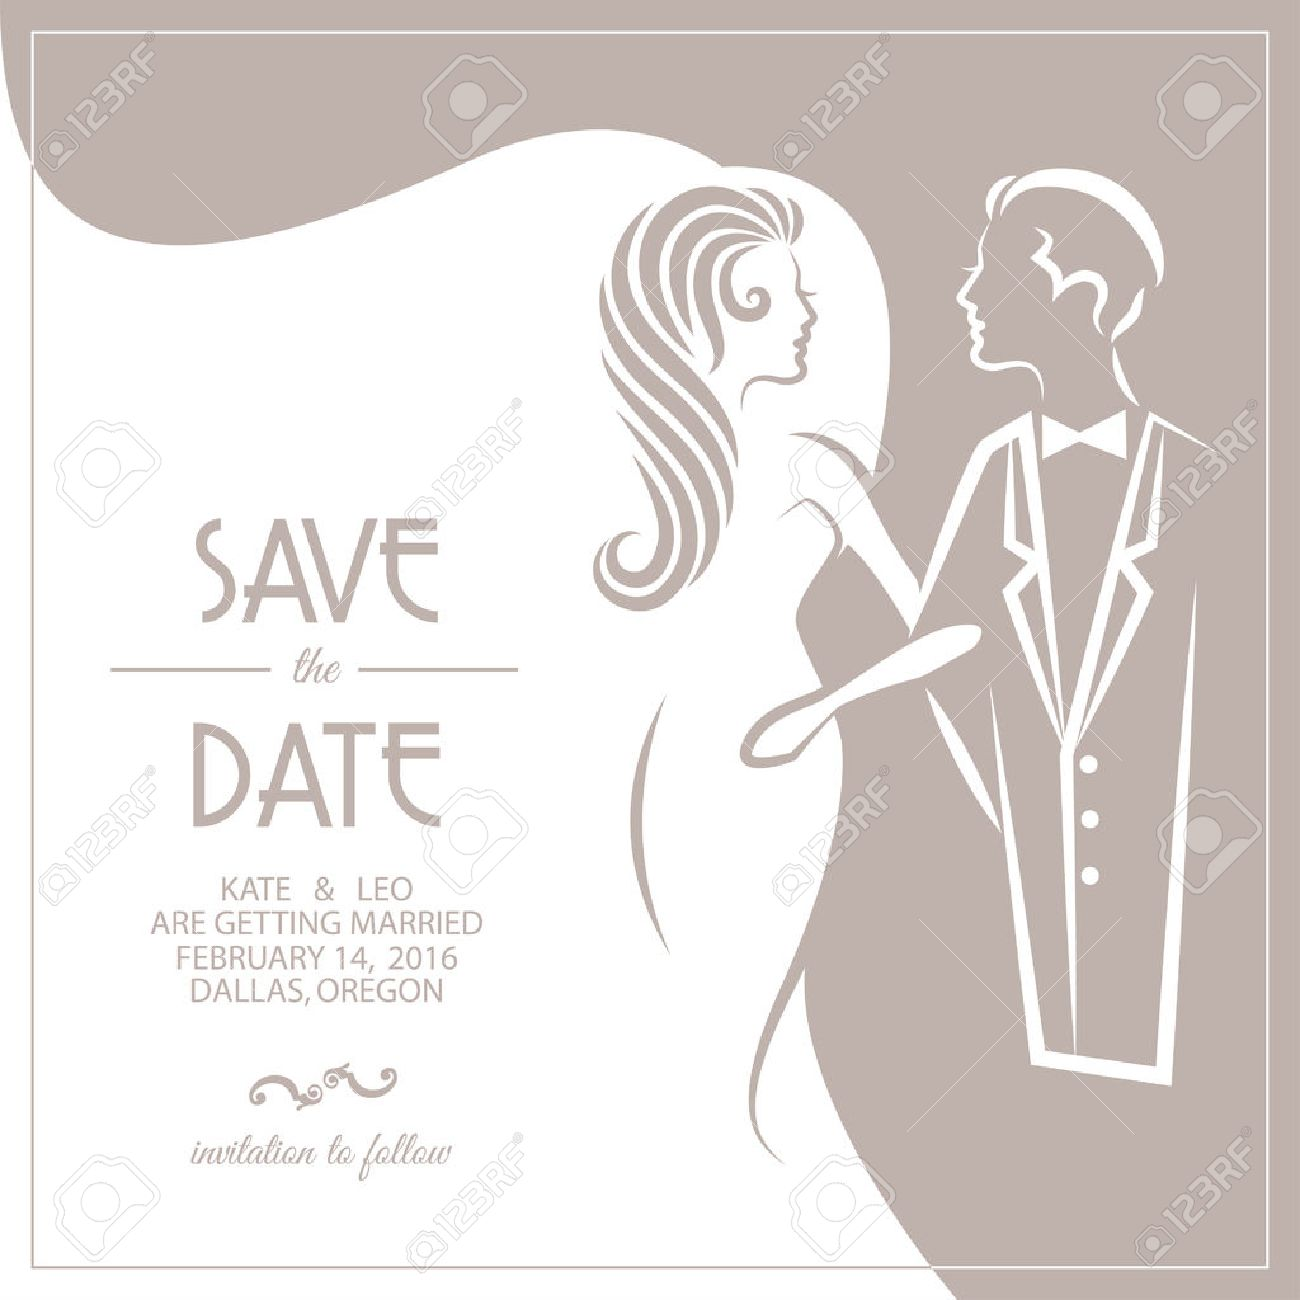 Wedding Invitation Card With Groom And Bride. Vector Illustration ...